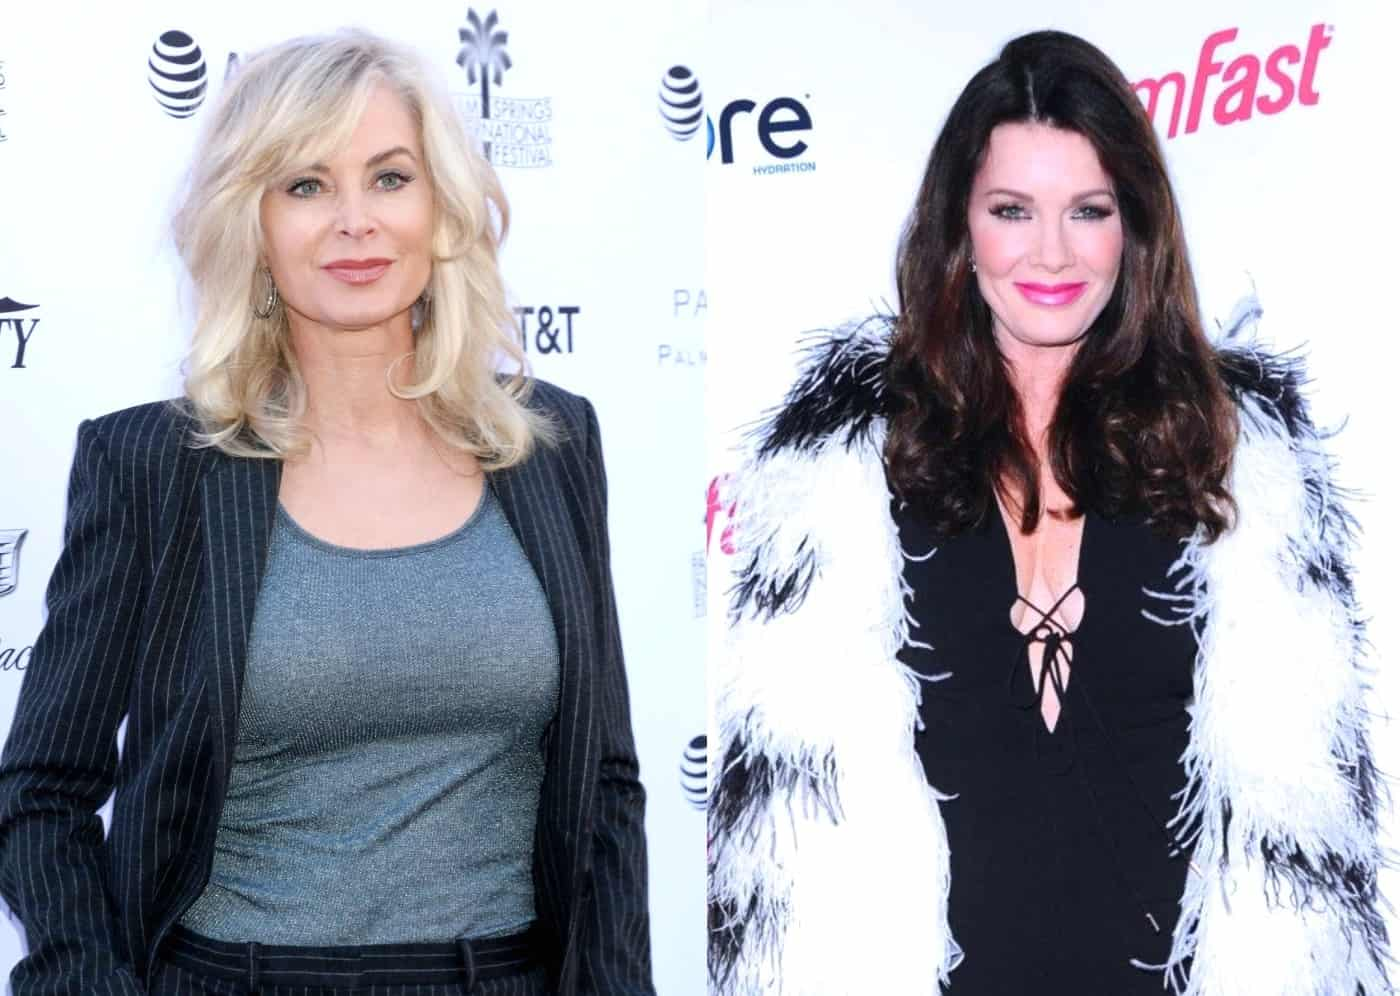 Eileen Davidson Reveals the Real Reason She Quit the RHOBH, Fires Back at Lisa Vanderpump's Claim That She Got Fired